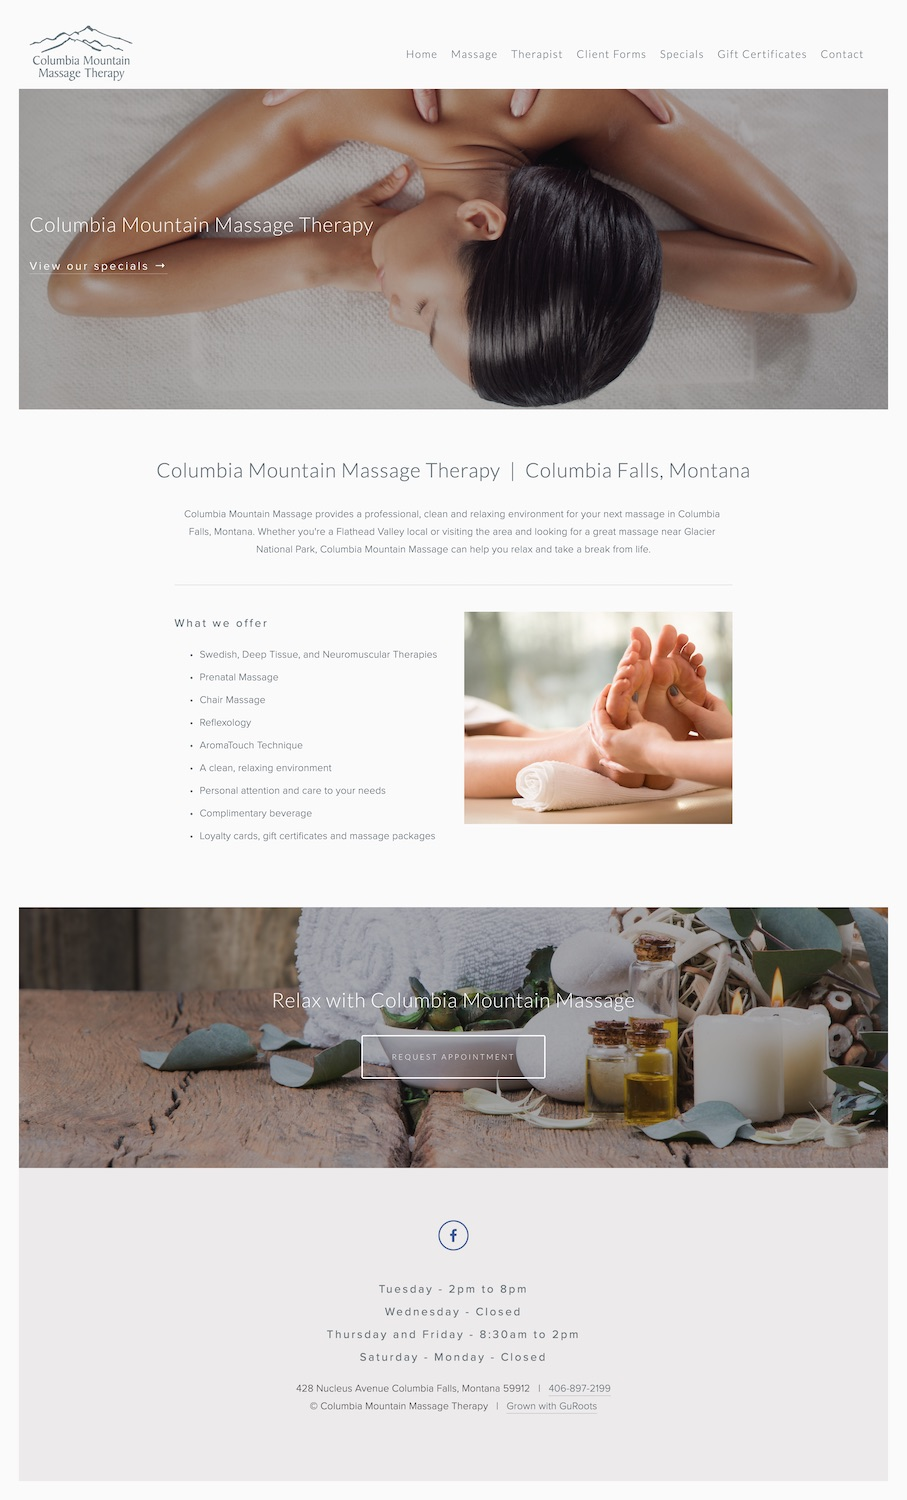 Massage TherapistWebsite Design - Location: Columbia Falls, MontanaWebsite design for a Massage Therapist in Columbia Falls, Montana. This mobile-friendly site showcases massage services, a Square gift card store, updated specials and a contact form.tags: massage website design, columbia falls web design, responsive website design, flathead valley marketing, minimal web design, local seo, squarespace web design, squarespace authorized training company